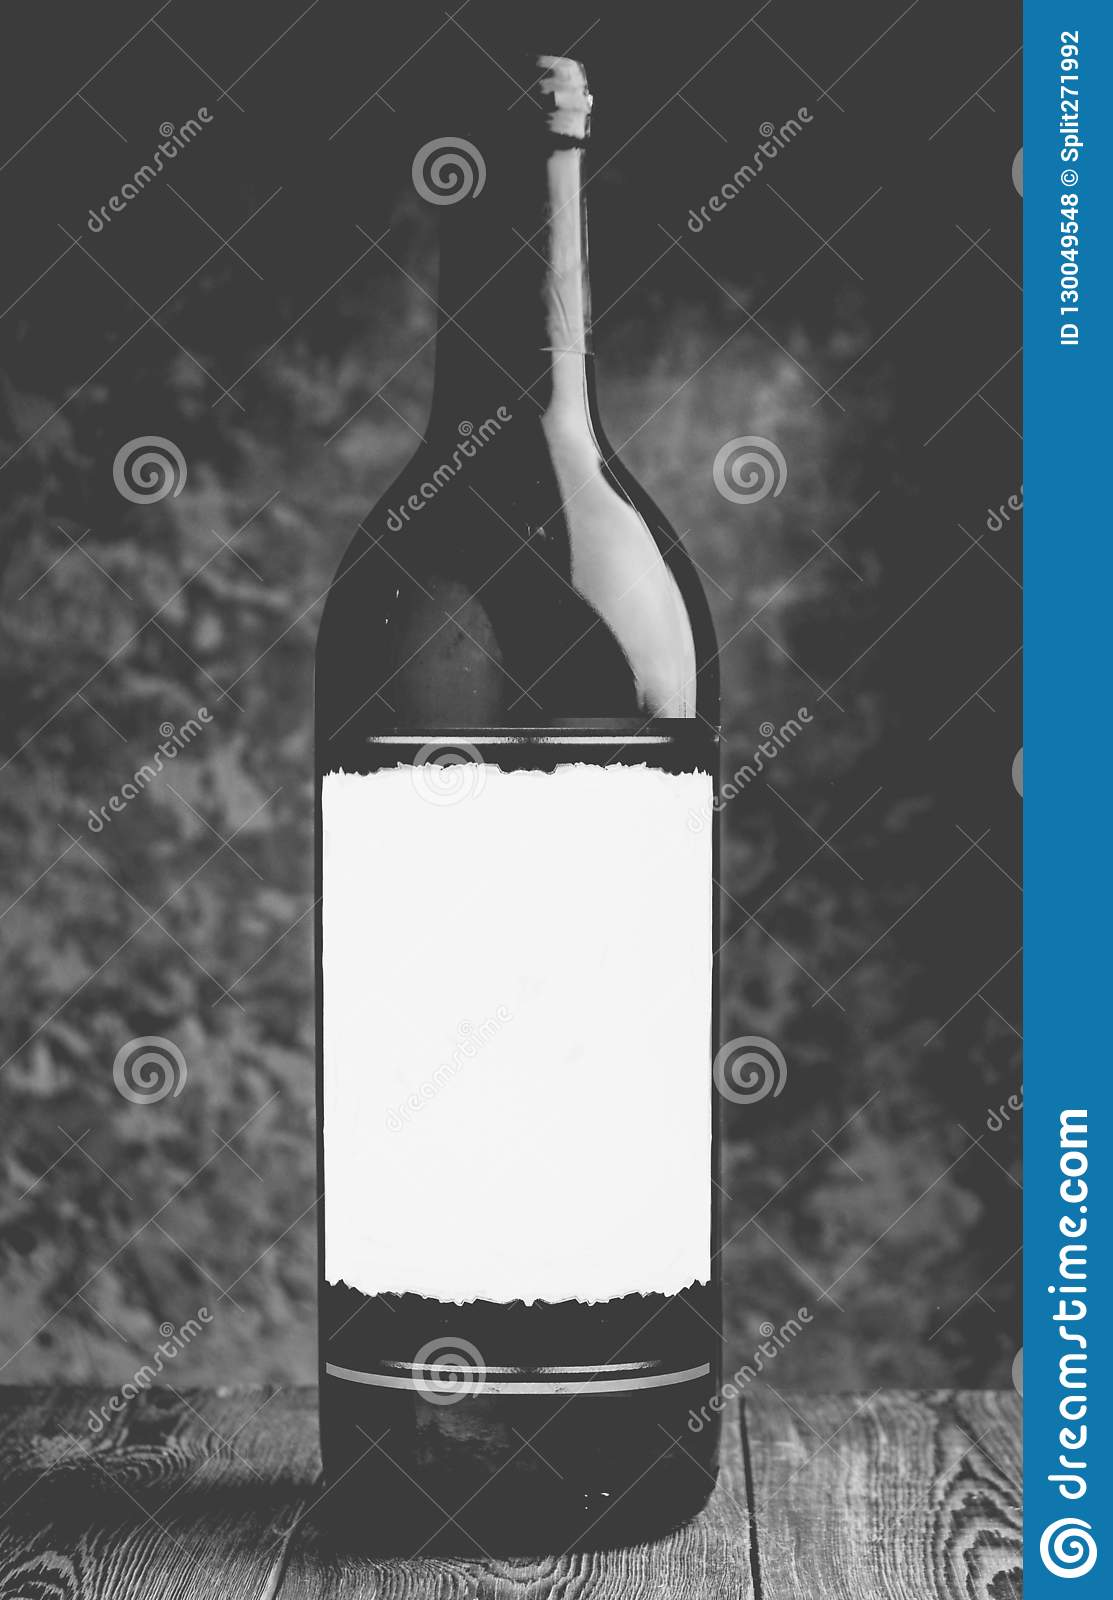 A bottle of white dry wine on a wooden table